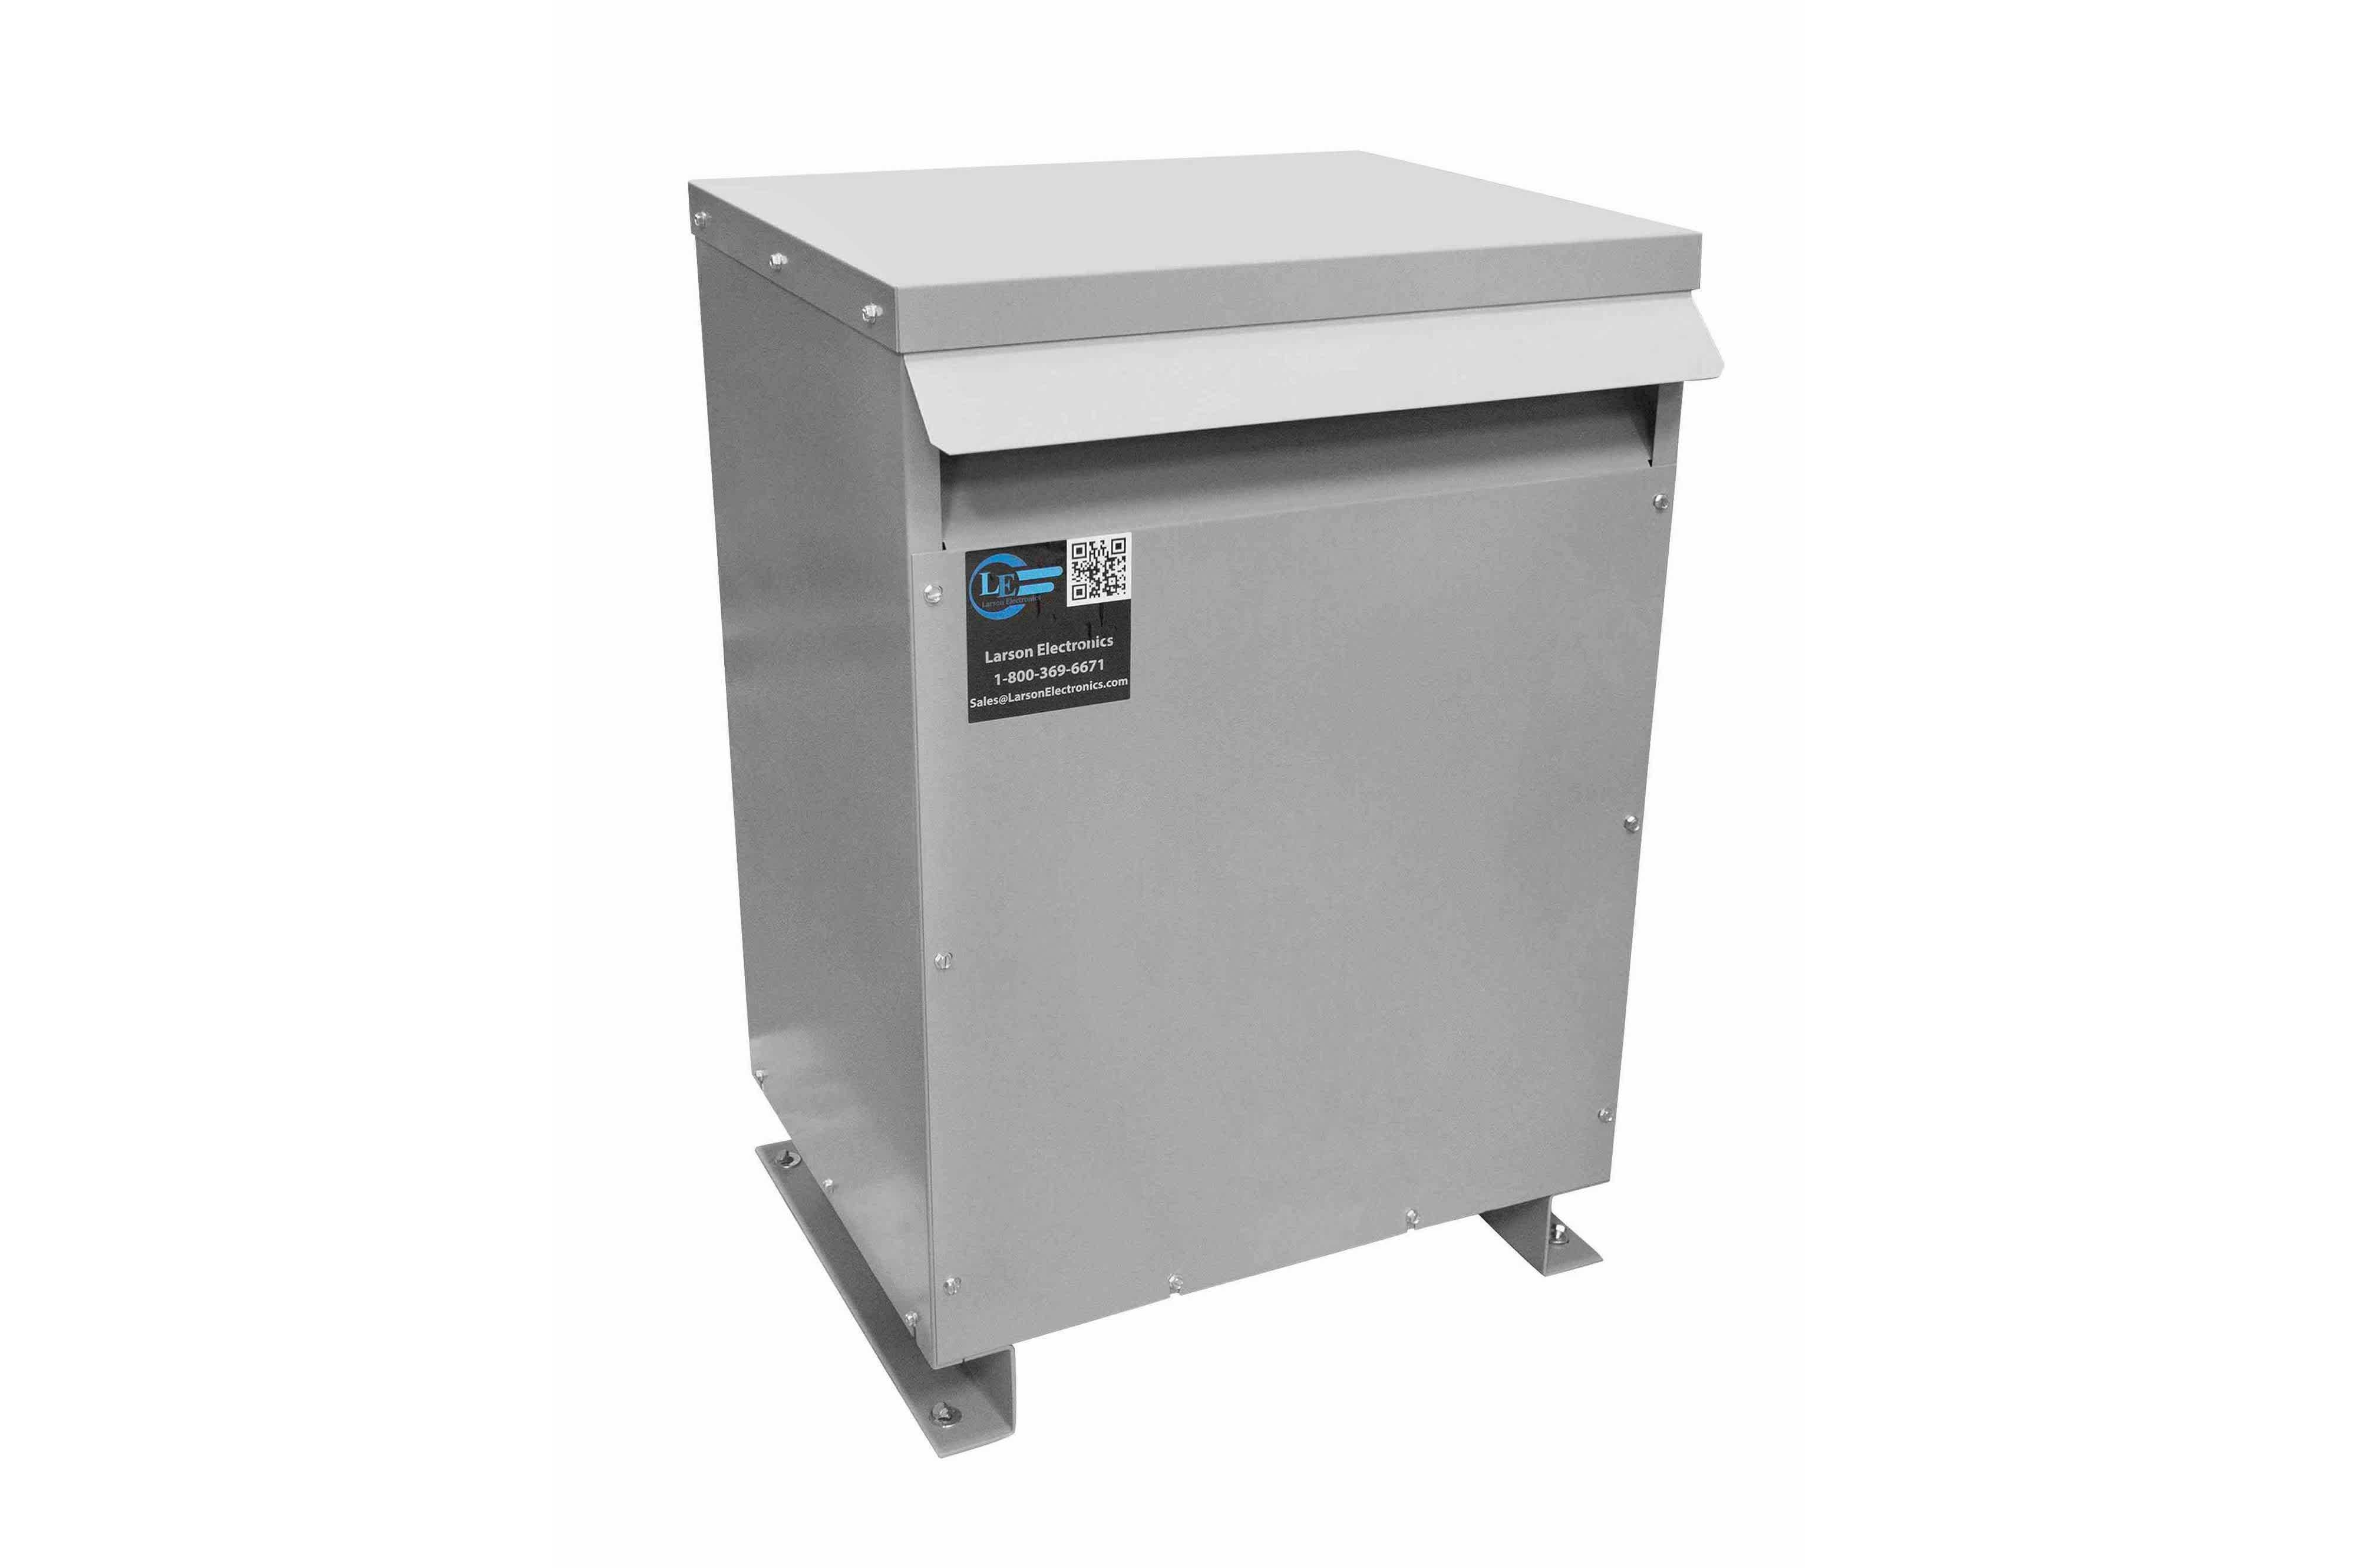 80 kVA 3PH Isolation Transformer, 400V Wye Primary, 240V/120 Delta Secondary, N3R, Ventilated, 60 Hz